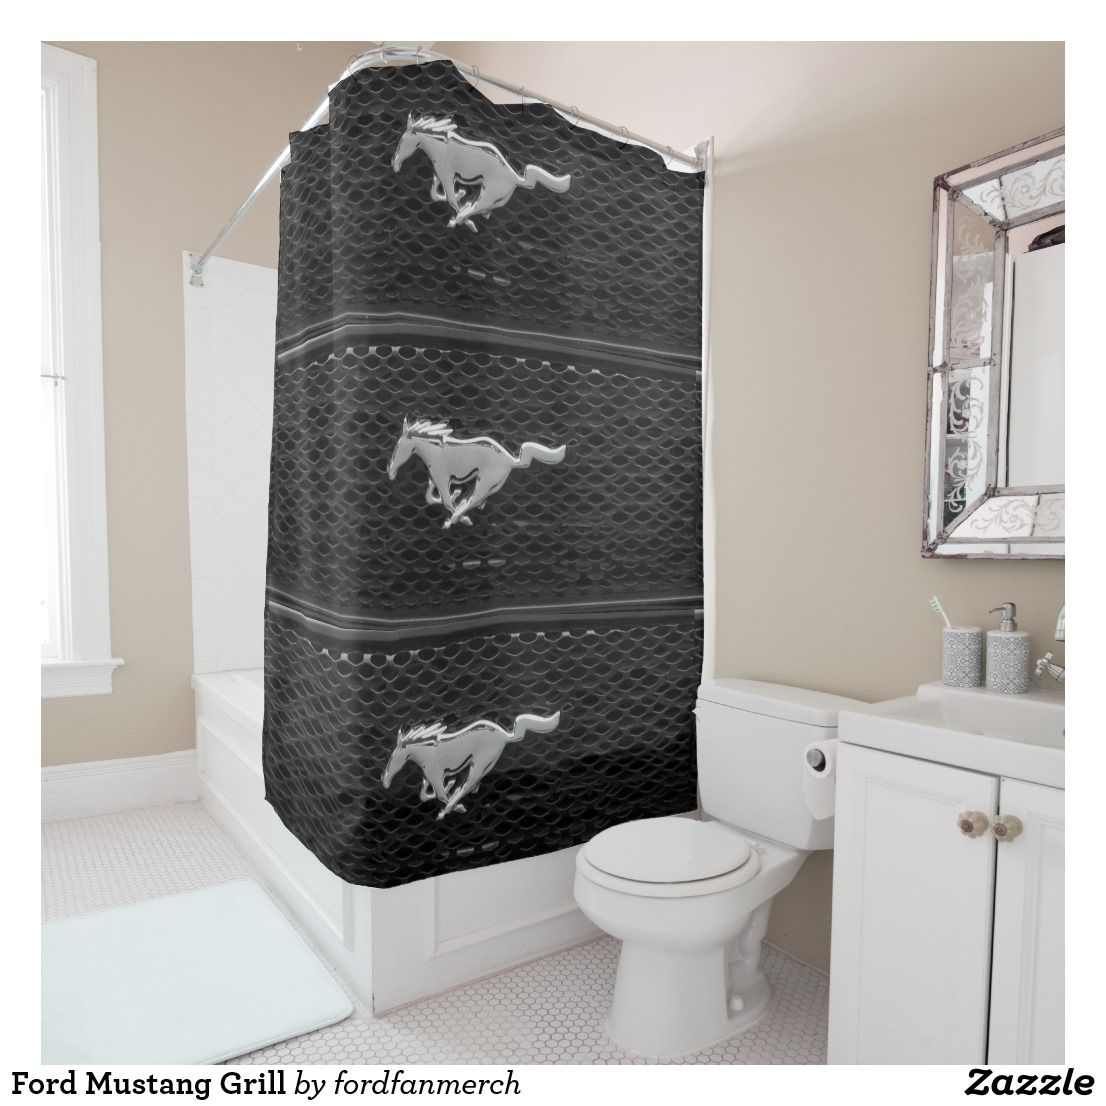 Ford Mustang Grill Shower Curtain